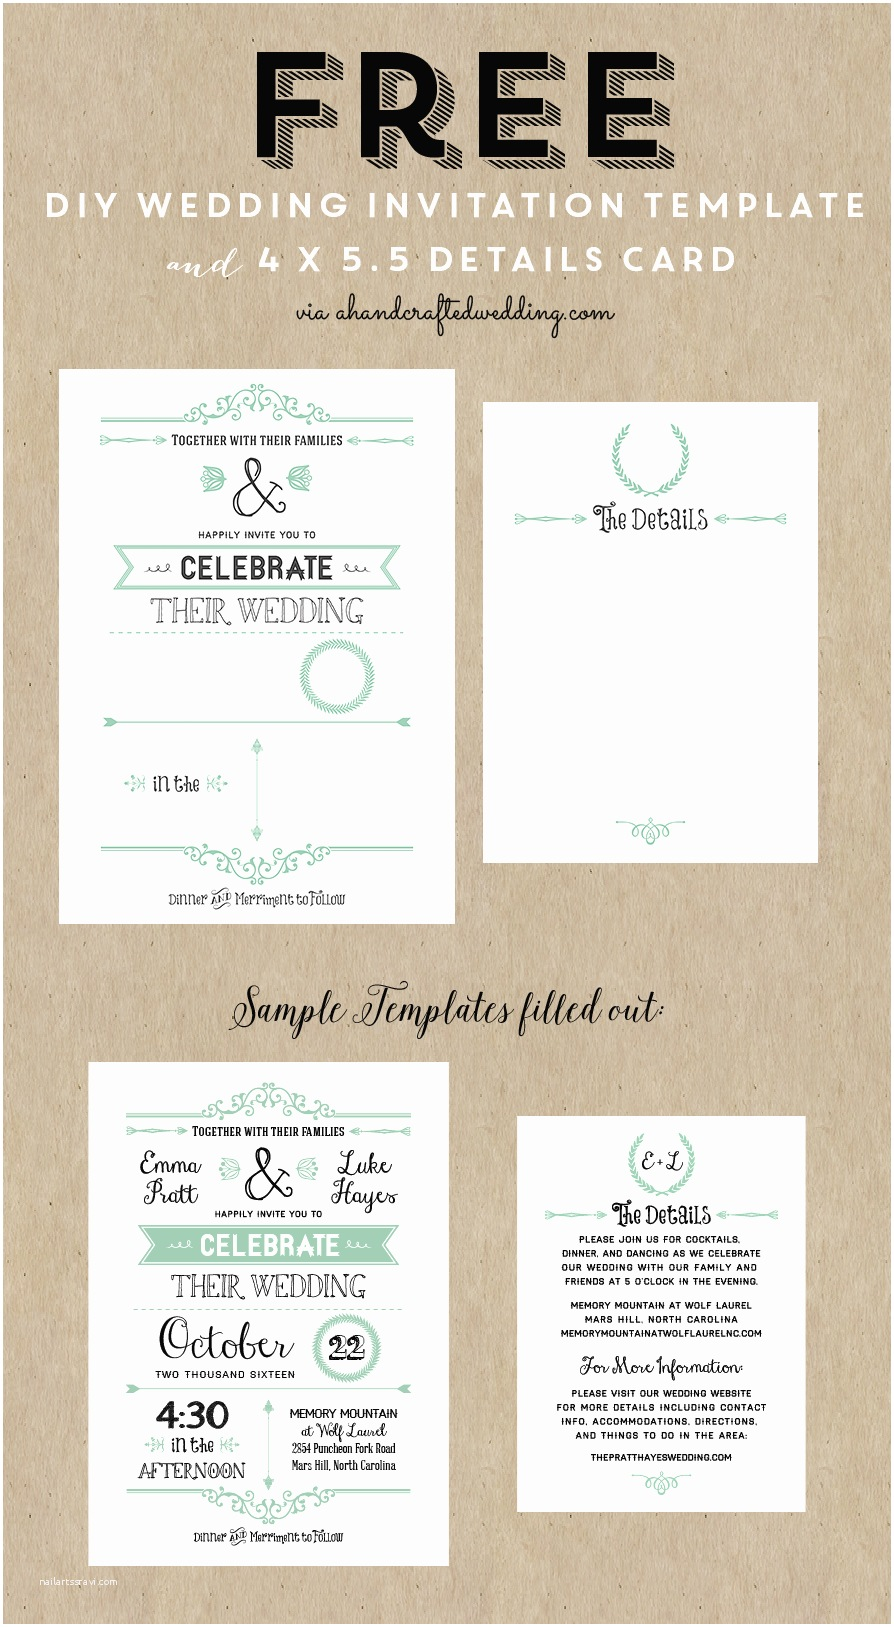 Diy Wedding Invitations Templates Do It Yourself Wedding Invitations Templates